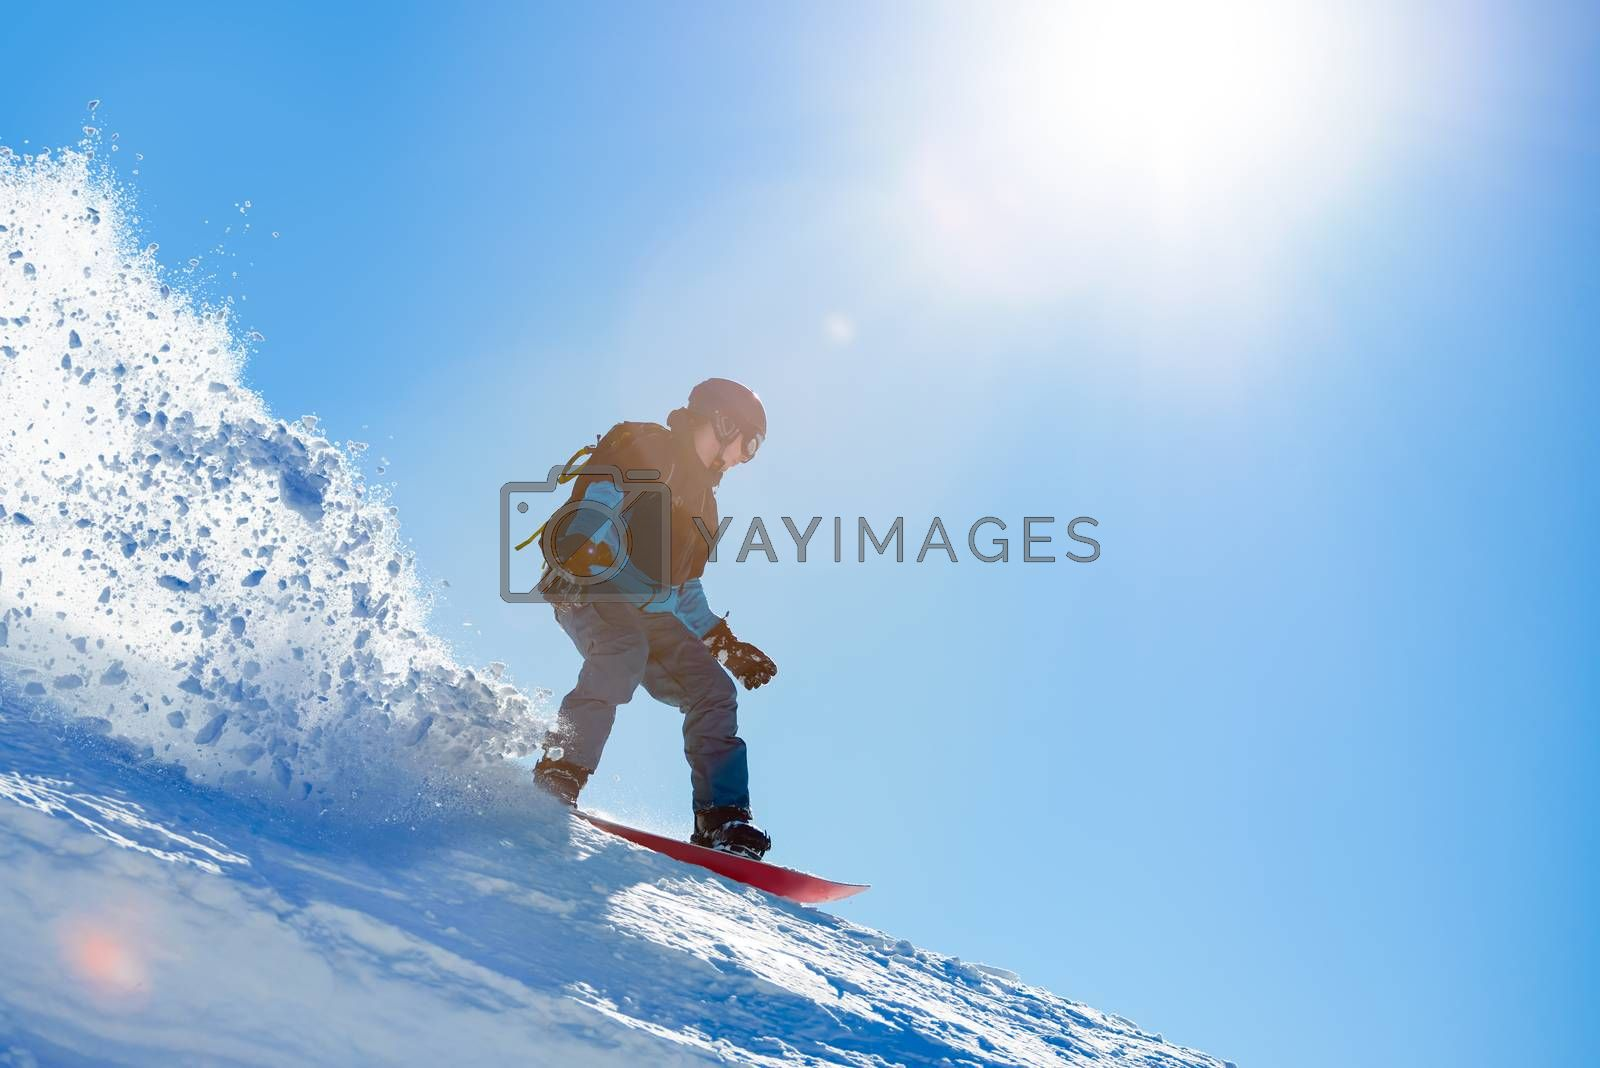 Snowboarder Riding Red Snowboard on the Slope in the Mountains in Bright Sun. Snowboarding and Extreme Winter Sports Concept.